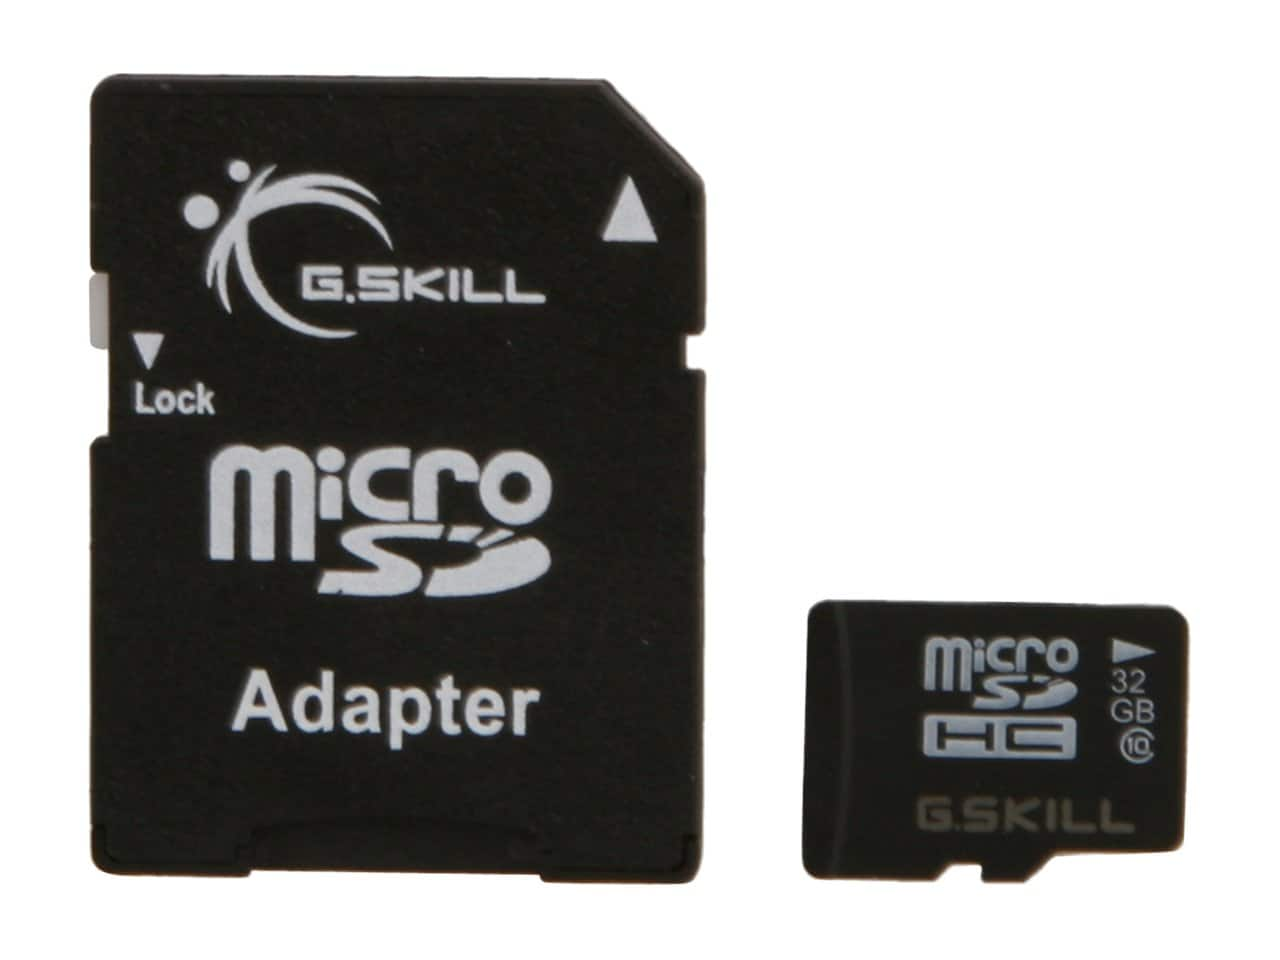 32 GB G.SKILL Class 10 UHS-1 microSDHC Flash Card with Adapter for $7.99 AC + Free Shipping @ Newegg.com